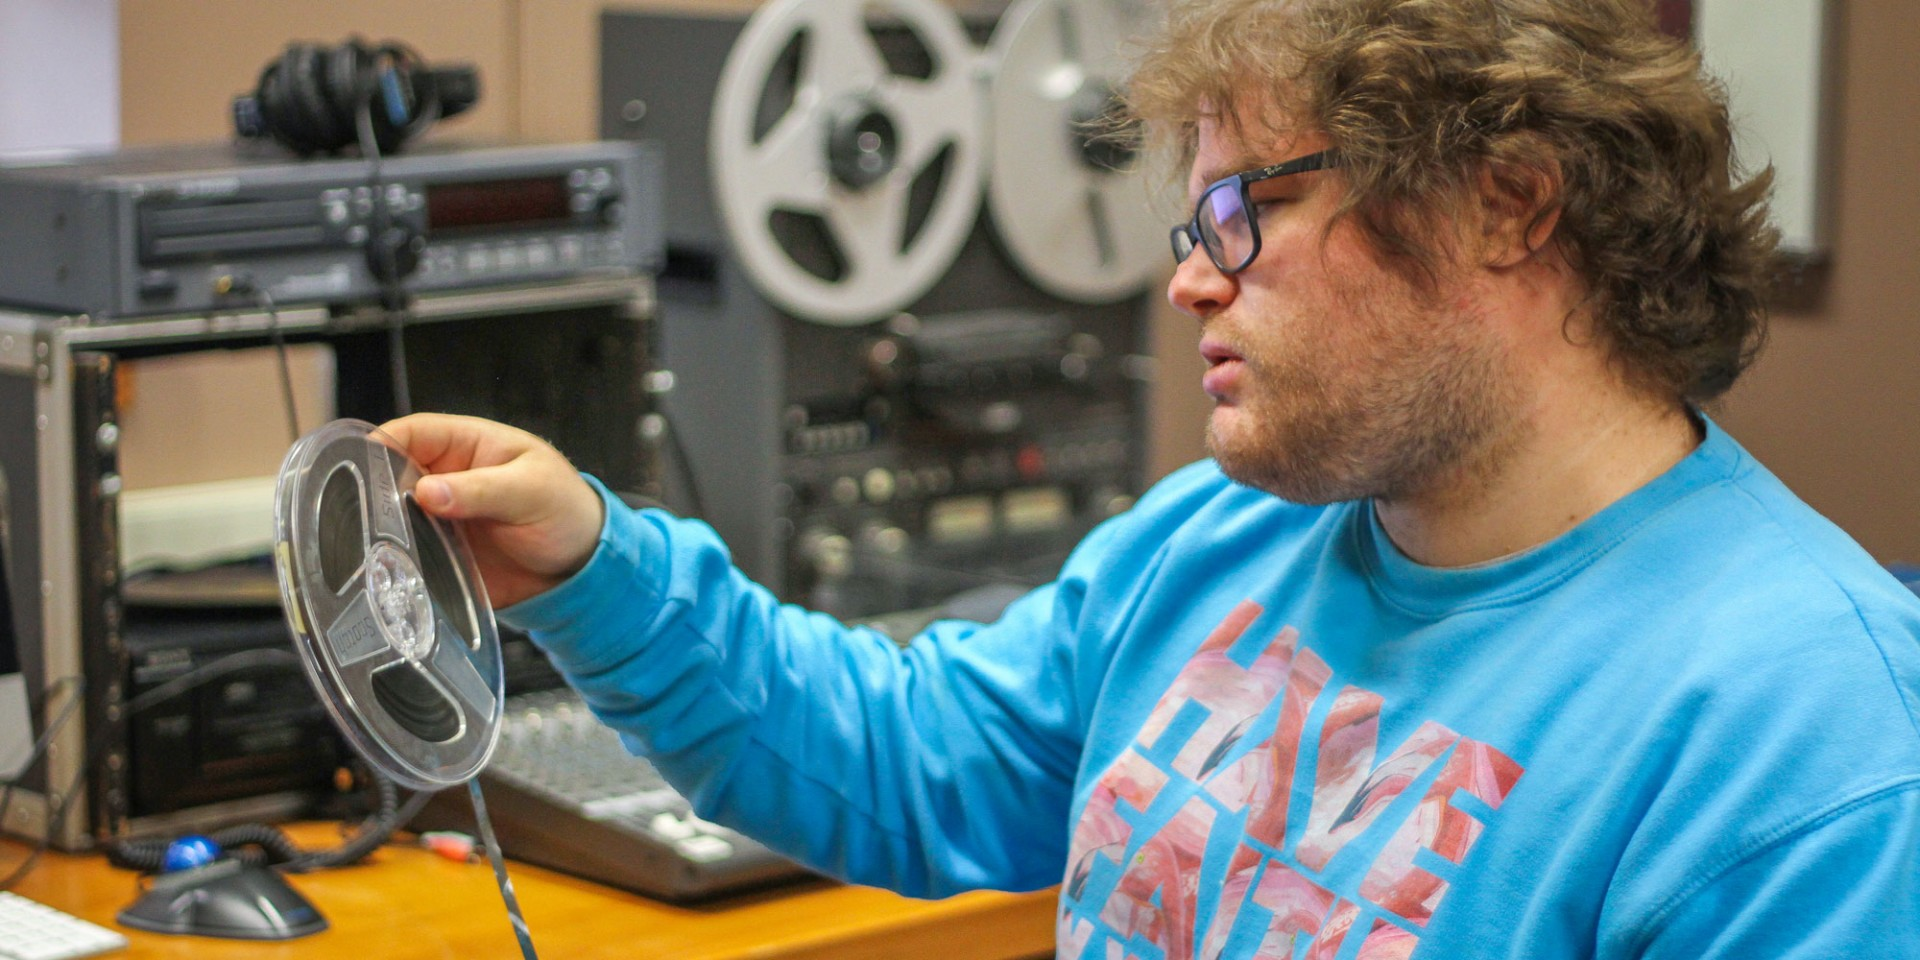 Tom Merklinger, a master's student in music composition at the U of A, is one of several grad students helping to transfer thousands of Indigenous recordings dating back to the 1960s as part of the Digitizing the Ancestors project. (Photo: Sound Studies Institute)